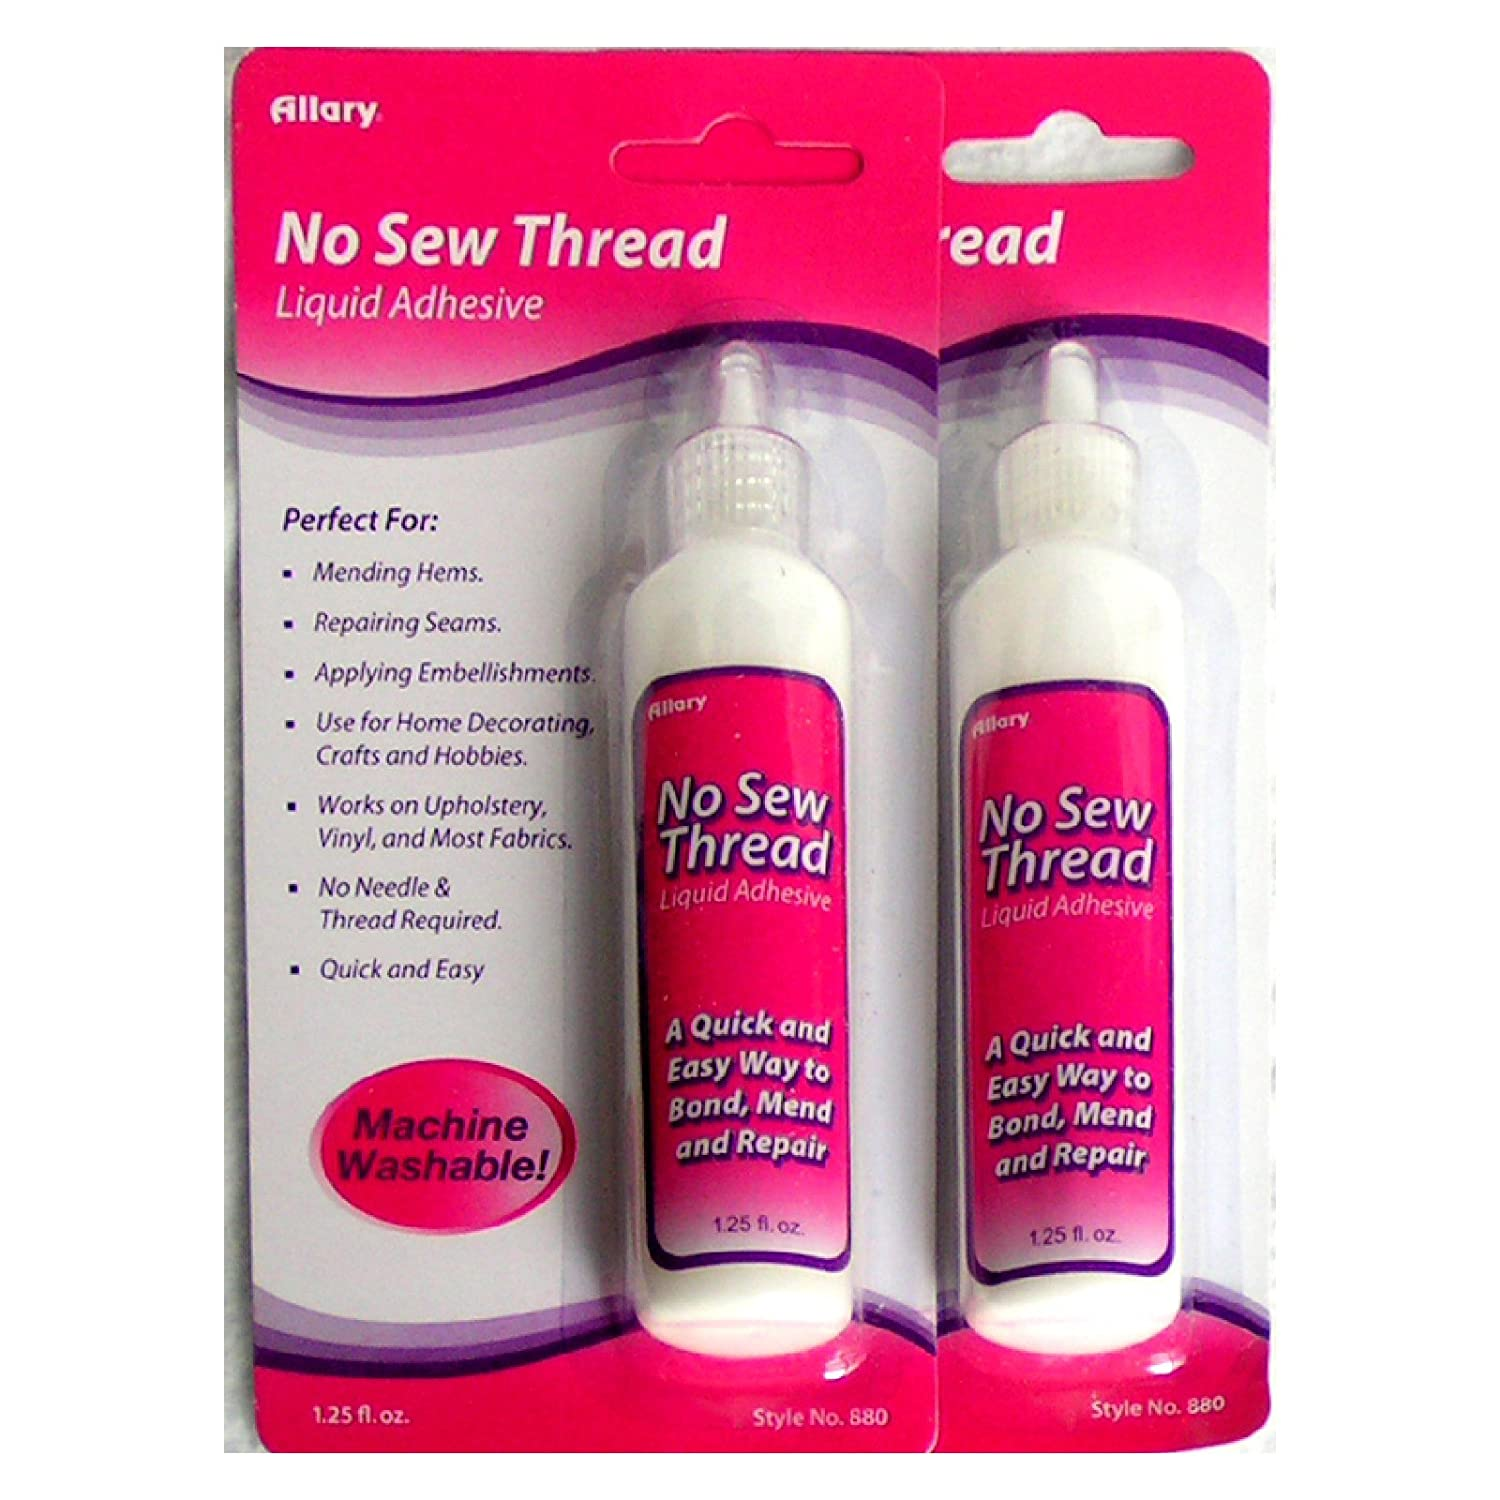 Allary No Sew Thread Machine Washable Liquid Fabric Adhesive (1.25 oz) - Multipack of 2 Tubes Allary Corp VB-202